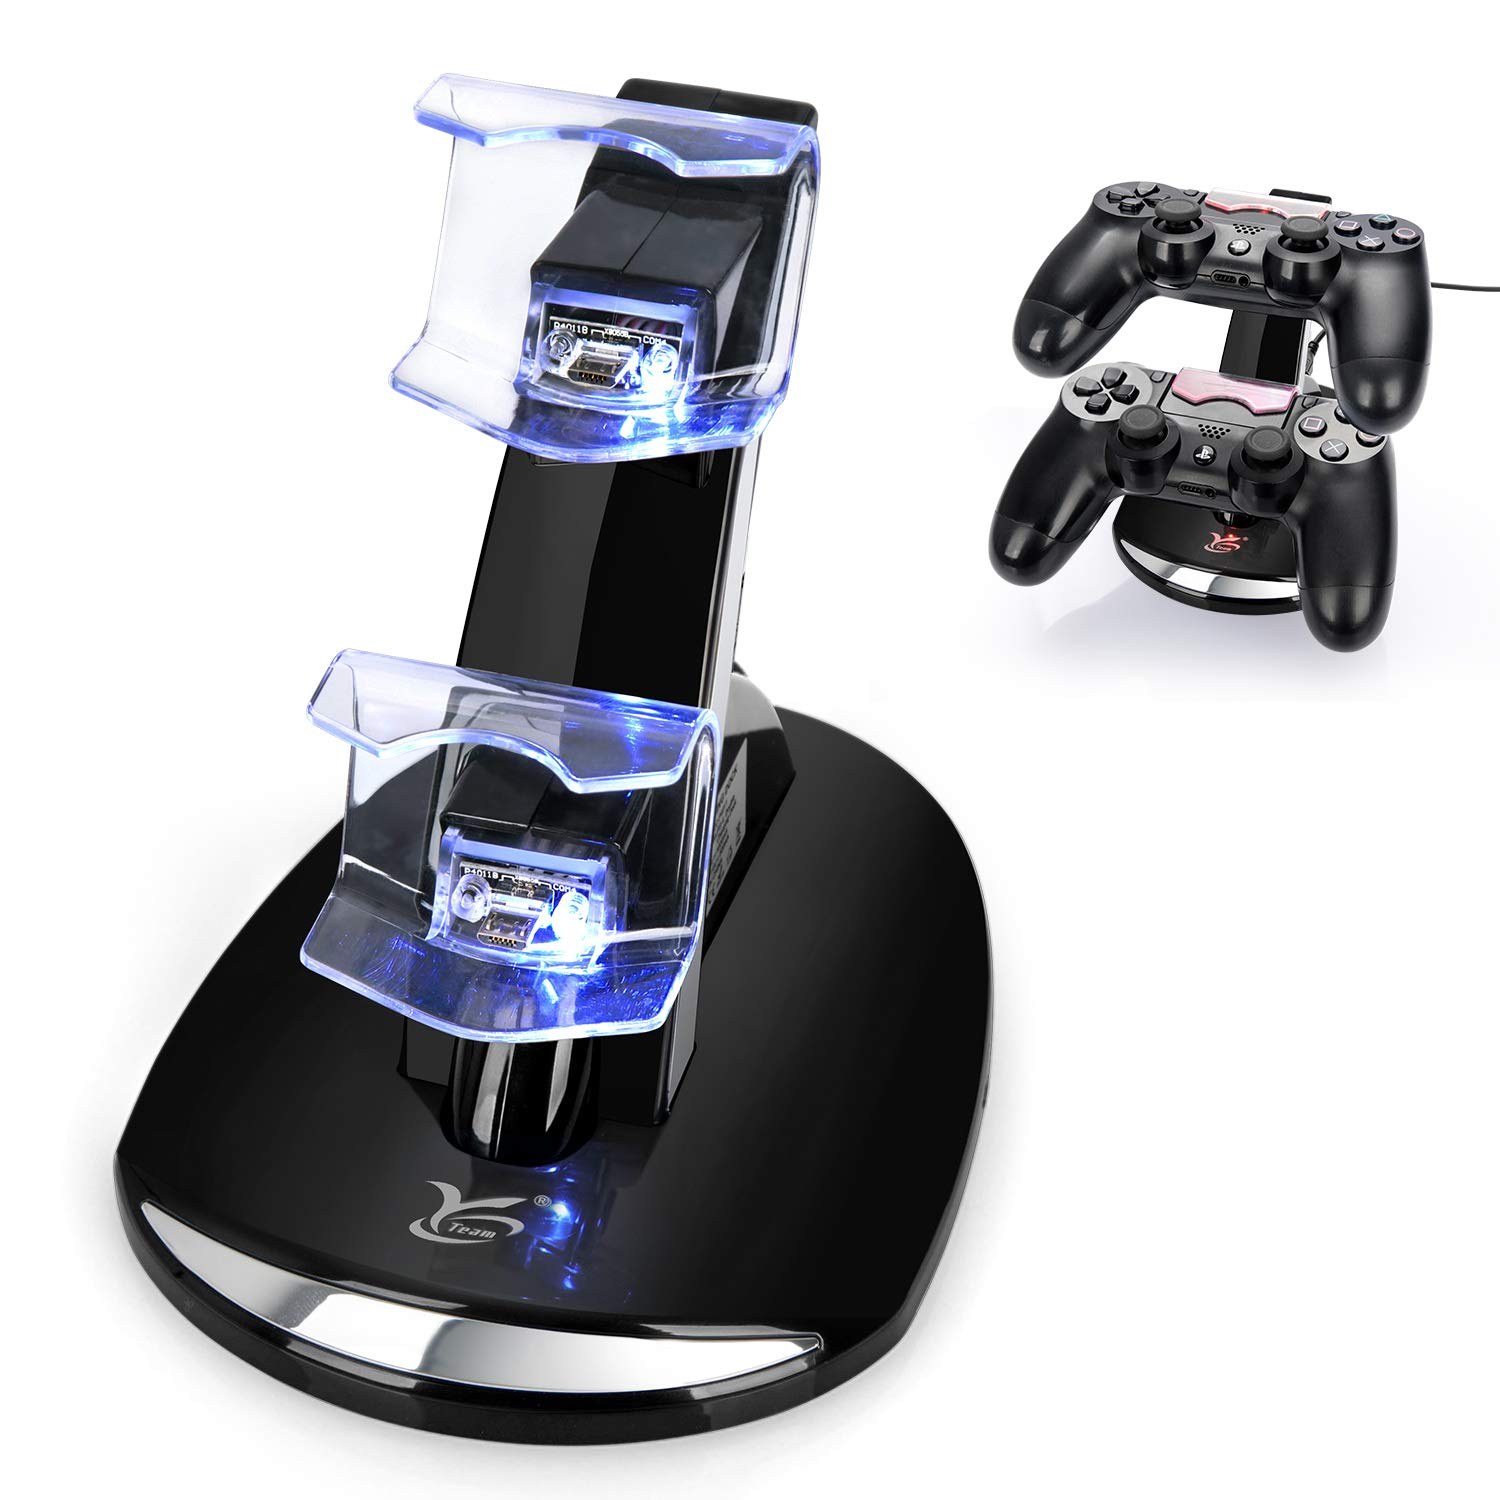 PS4 Controller Charger, Y Team Playstation 4 / PS4 / PS4 Pro / PS4 Slim Controller Charger Charging Docking Station Stand.Dual USB Fast Charging Station & LED Indicator for Sony PS4 Controller-Black